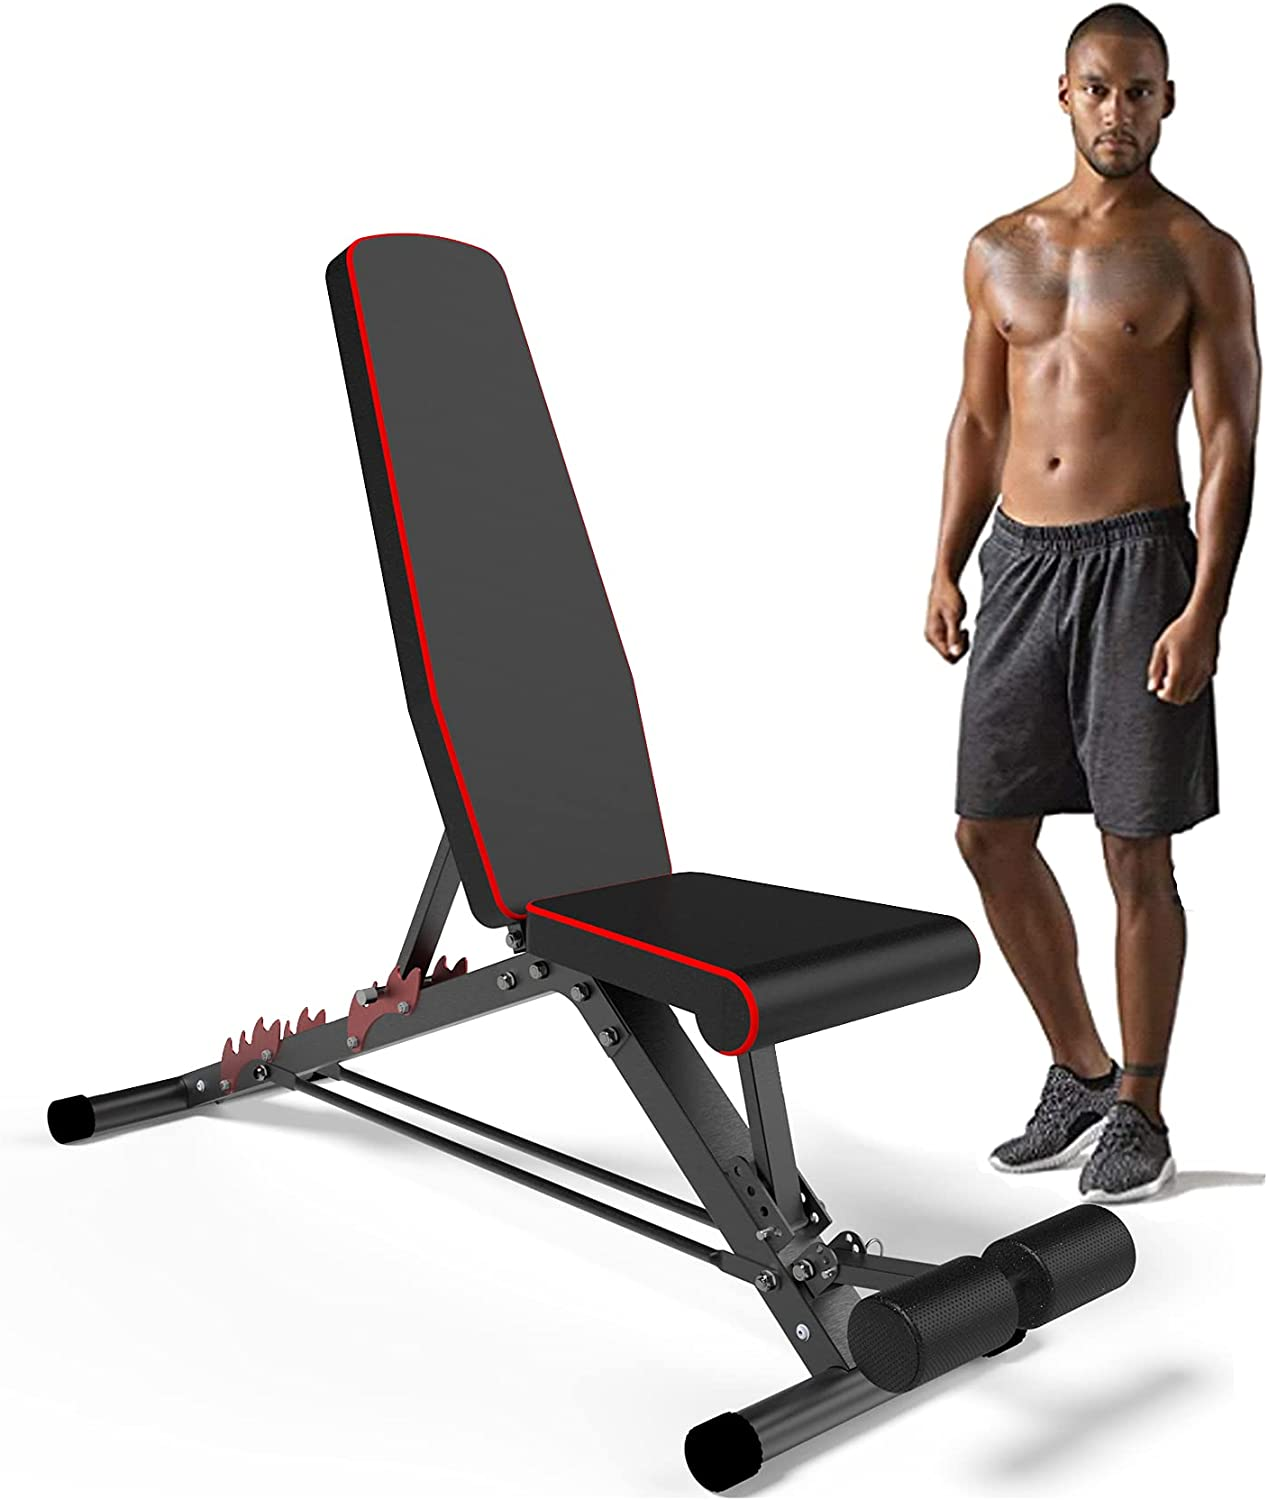 Gorgeous New item HOMETAL Adjustable Weight Bench Training Body Wo for Full